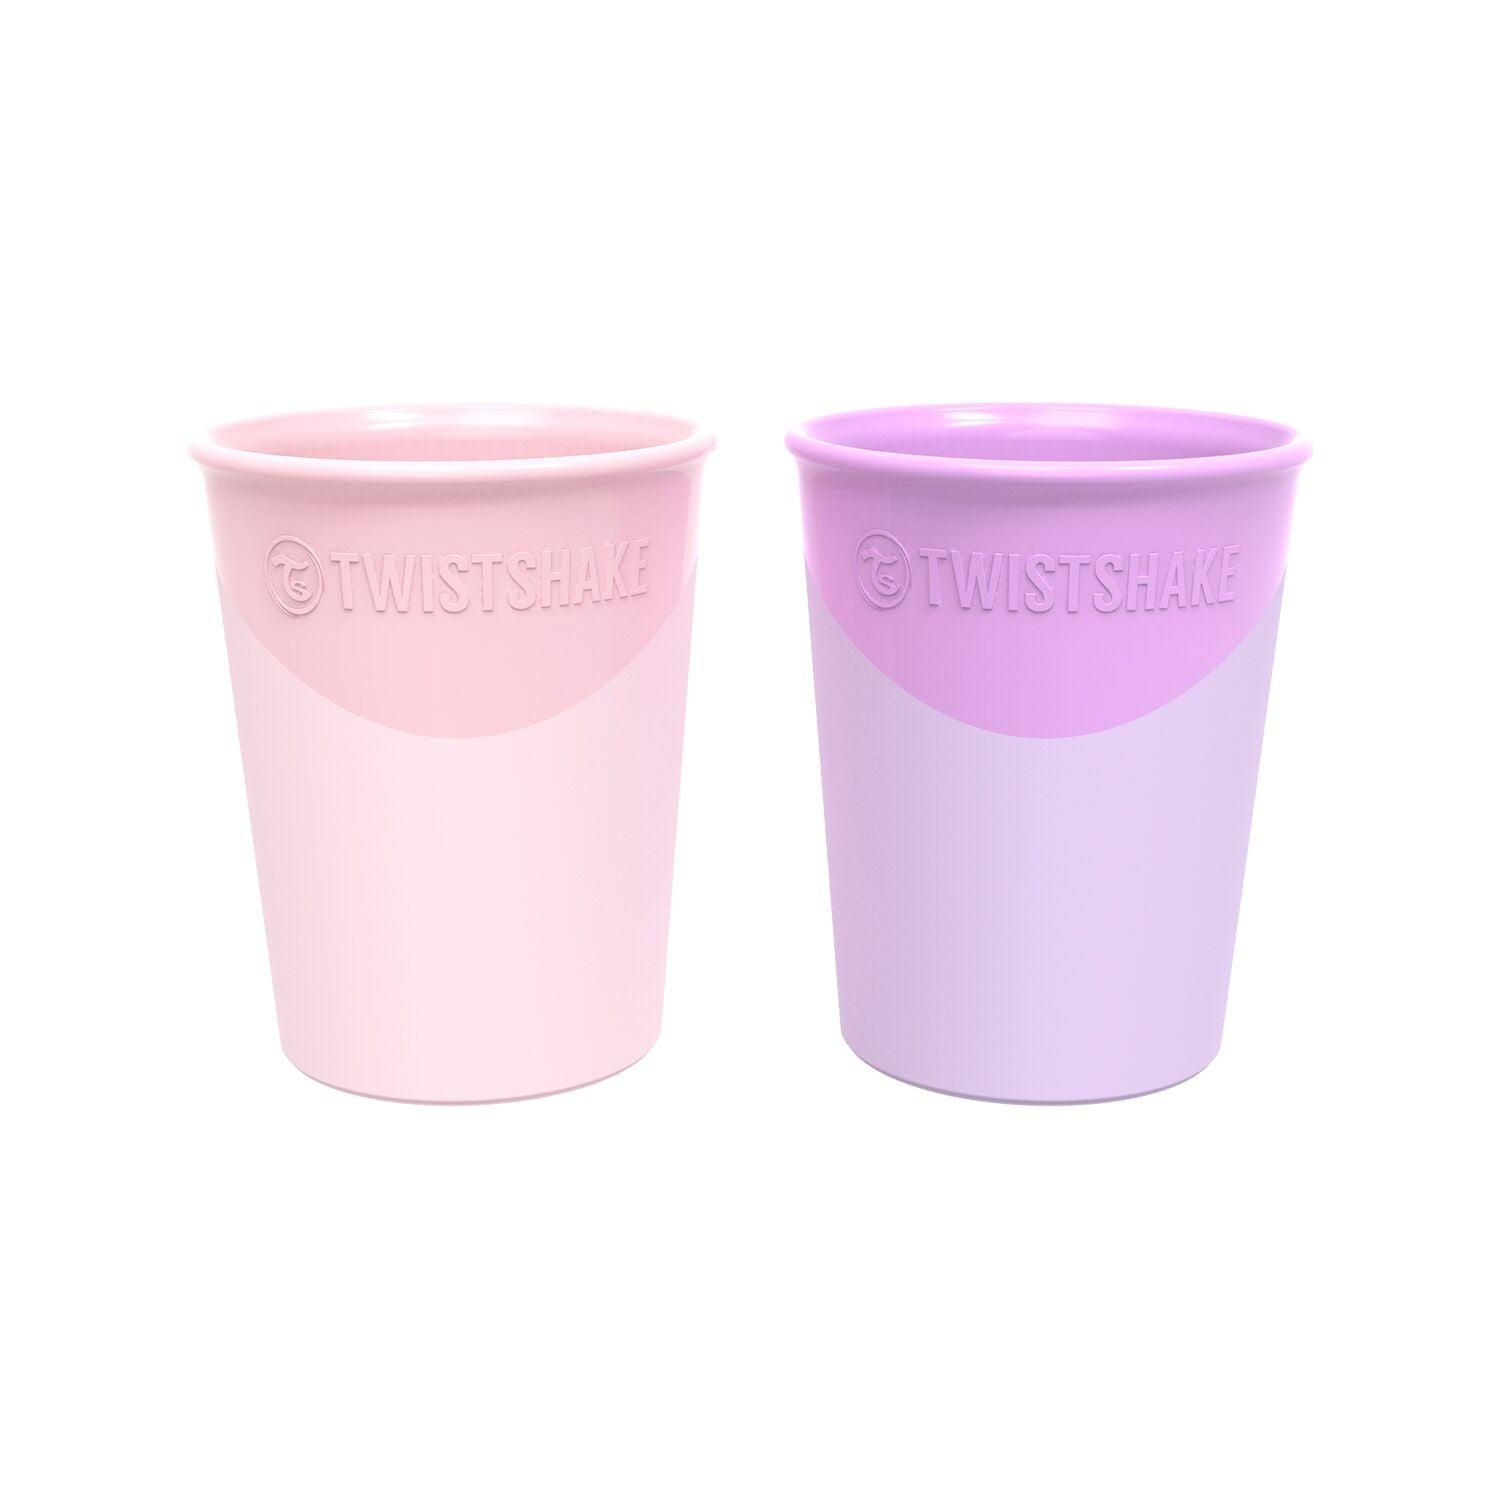 Twistshake Becher 2er Set - Pastel Pink/Purple